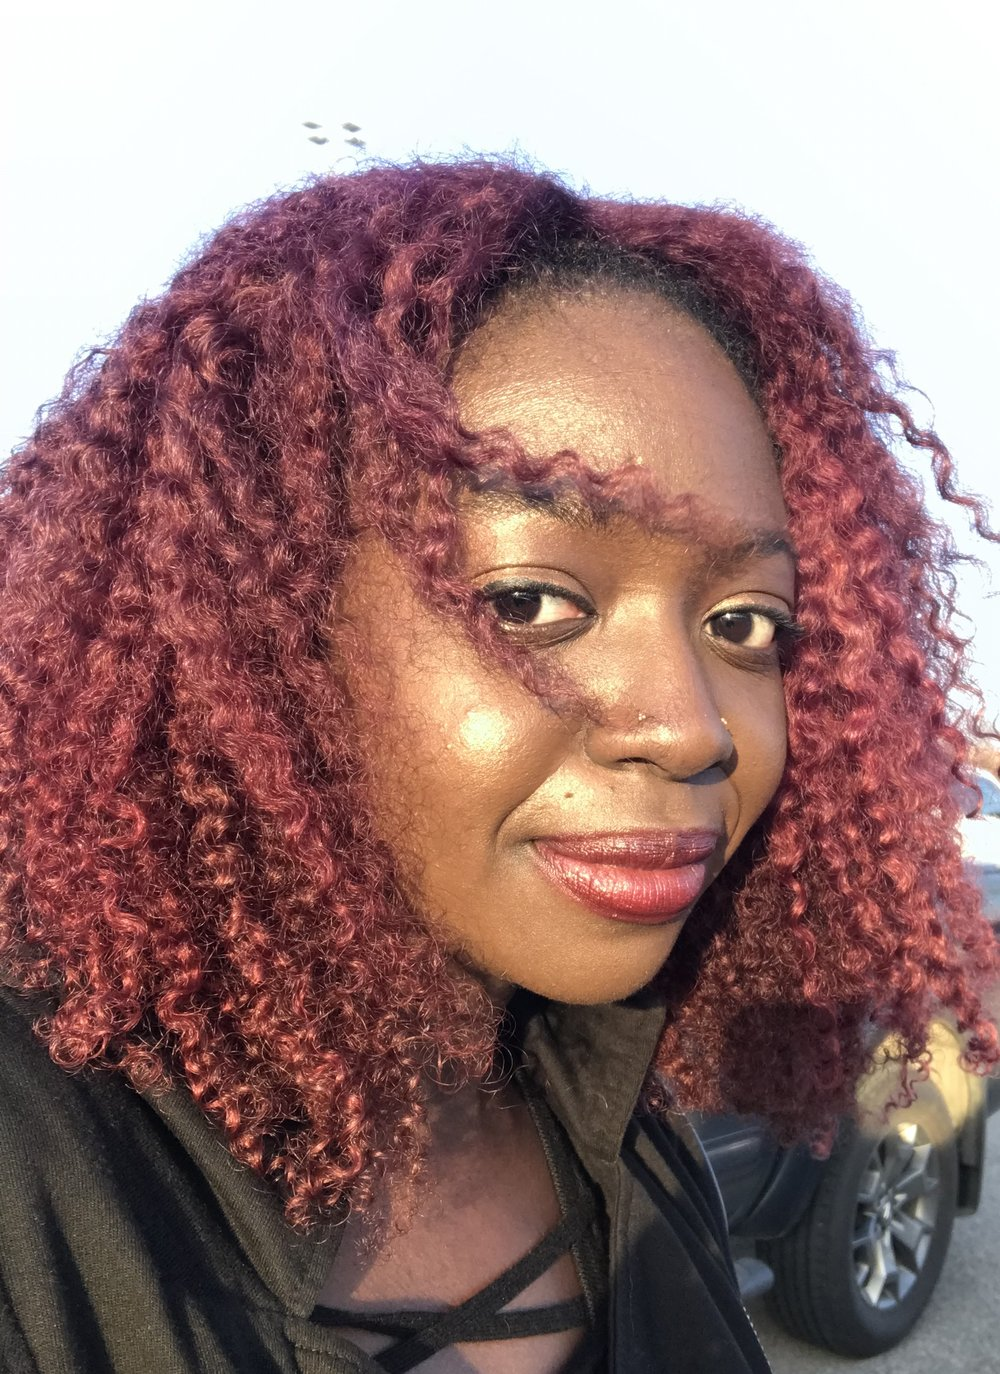 yasmin boakye - is a Pushcart Prize-nominated essayist and fiction writer raised in the Maryland suburbs of DC. A 2014 Callaloo Fellow in Fiction at Cave Hill and a 2019 Seventh Wave Resident at Bainbridge Island, she is also a recipient of NYU Abu Dhabi's Global Academic Fellowship in Writing and a VONA/Voices alum. Her prose has appeared or is forthcoming in Refinery29, TRACK/FOUR, The Seventh Wave, Puerto del Sol's Black Voices series, and Bird's Thumb. She is currently based in Iowa City, where she is pursuing the Master of Fine Arts degree in Nonfiction at the University of Iowa.